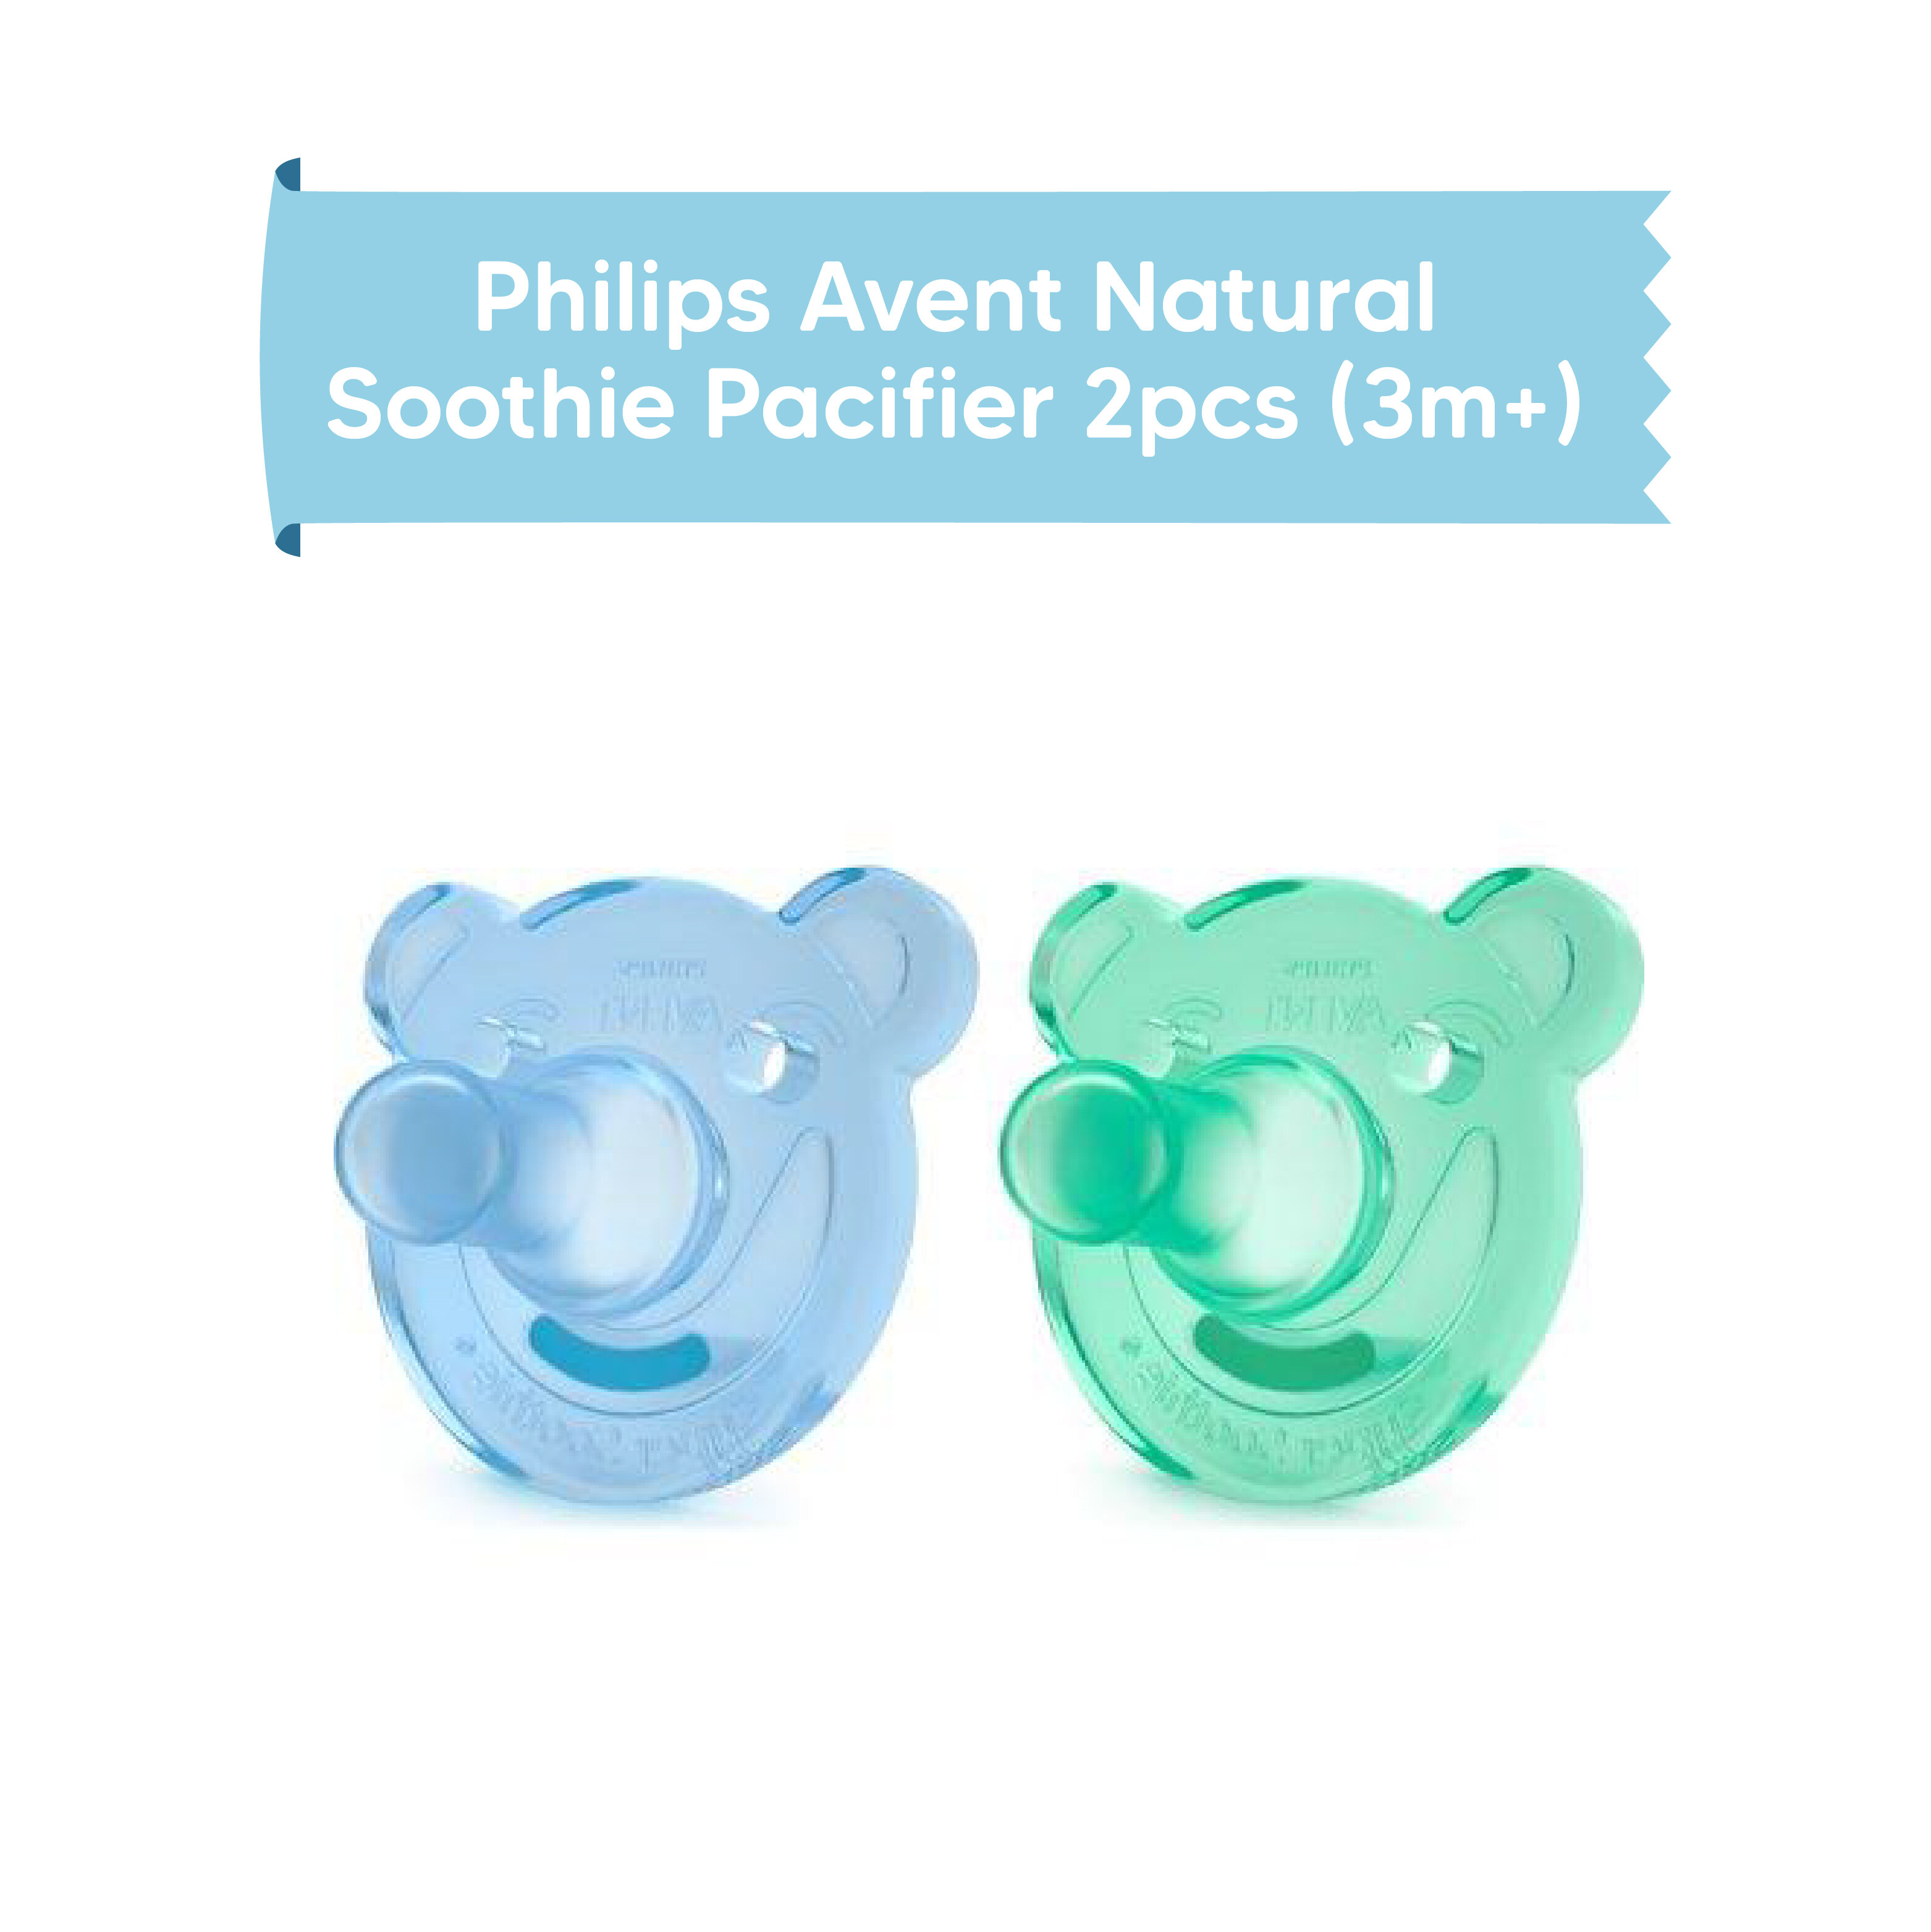 Philips Avent Natural Soothie Pacifier 2pcs (3m+)